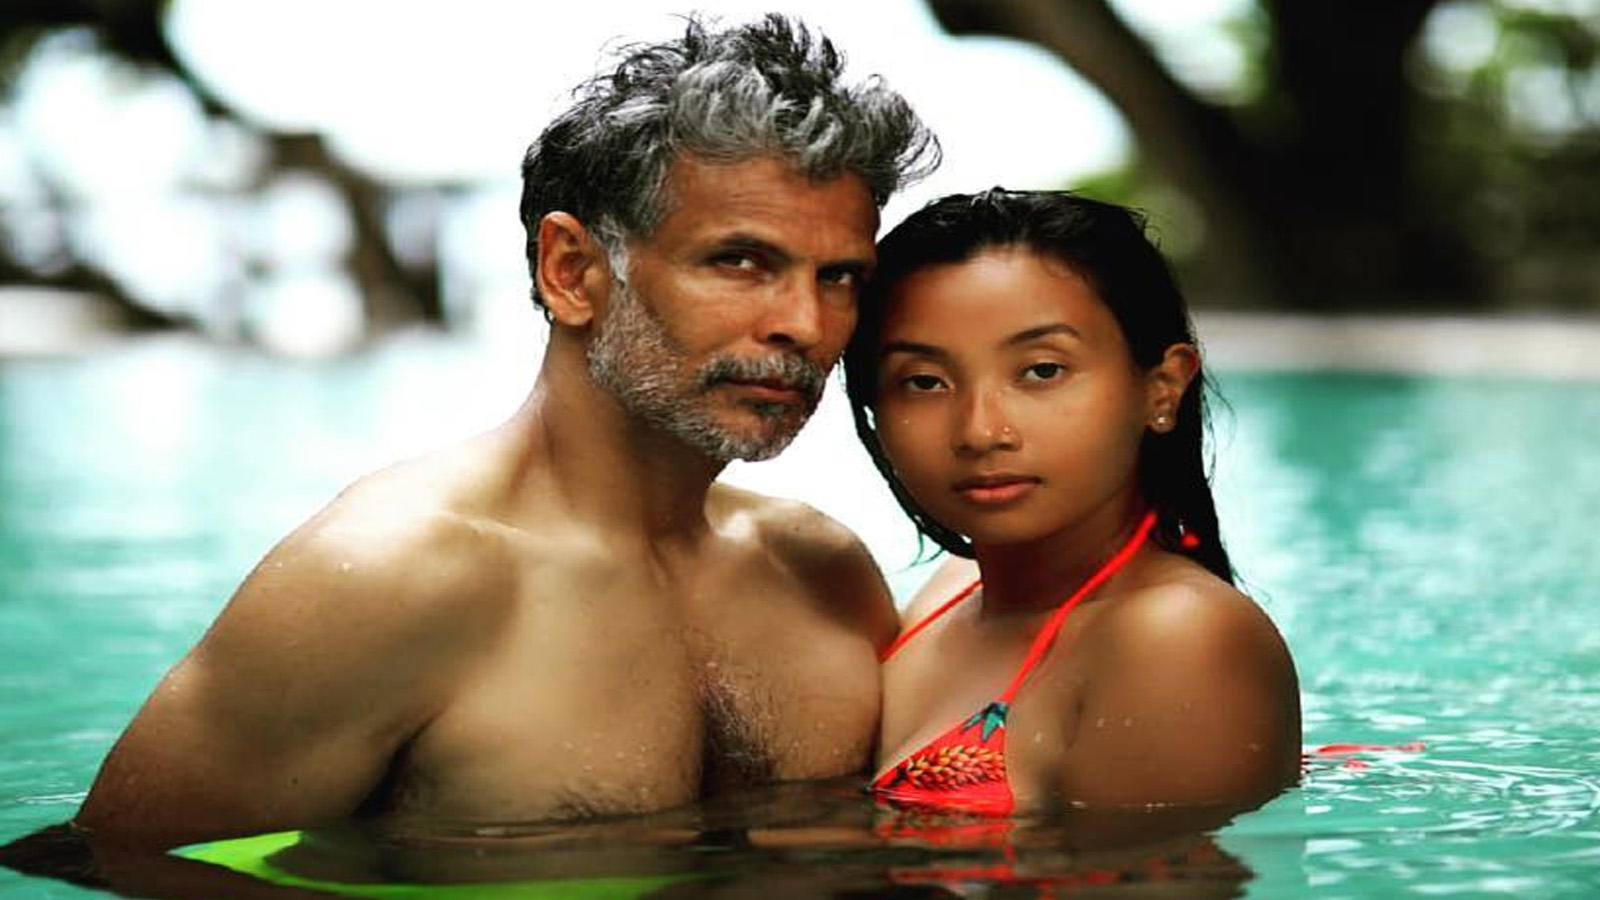 Despite their 26 years age gap, this is how Ankita Konwar convinced her family to marry Milind Soman